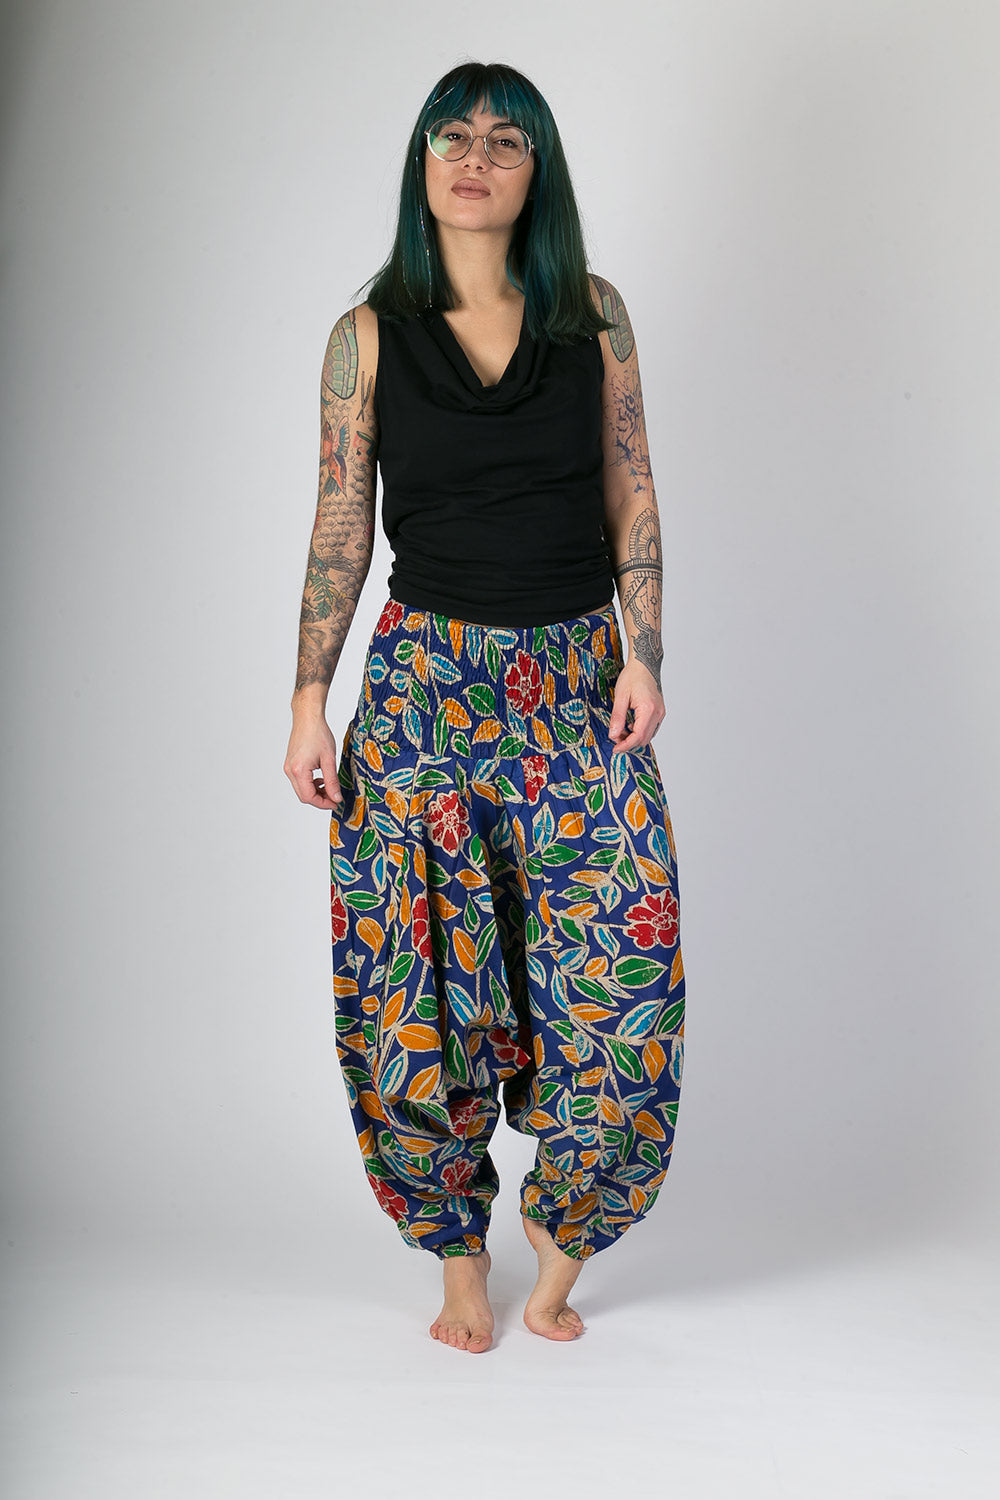 Blue-With-Colours-Floral-Print-Cotton-Hareem-Yoga-Jumpsuit-Pants-Avalonia-Avalonia-Avalonia